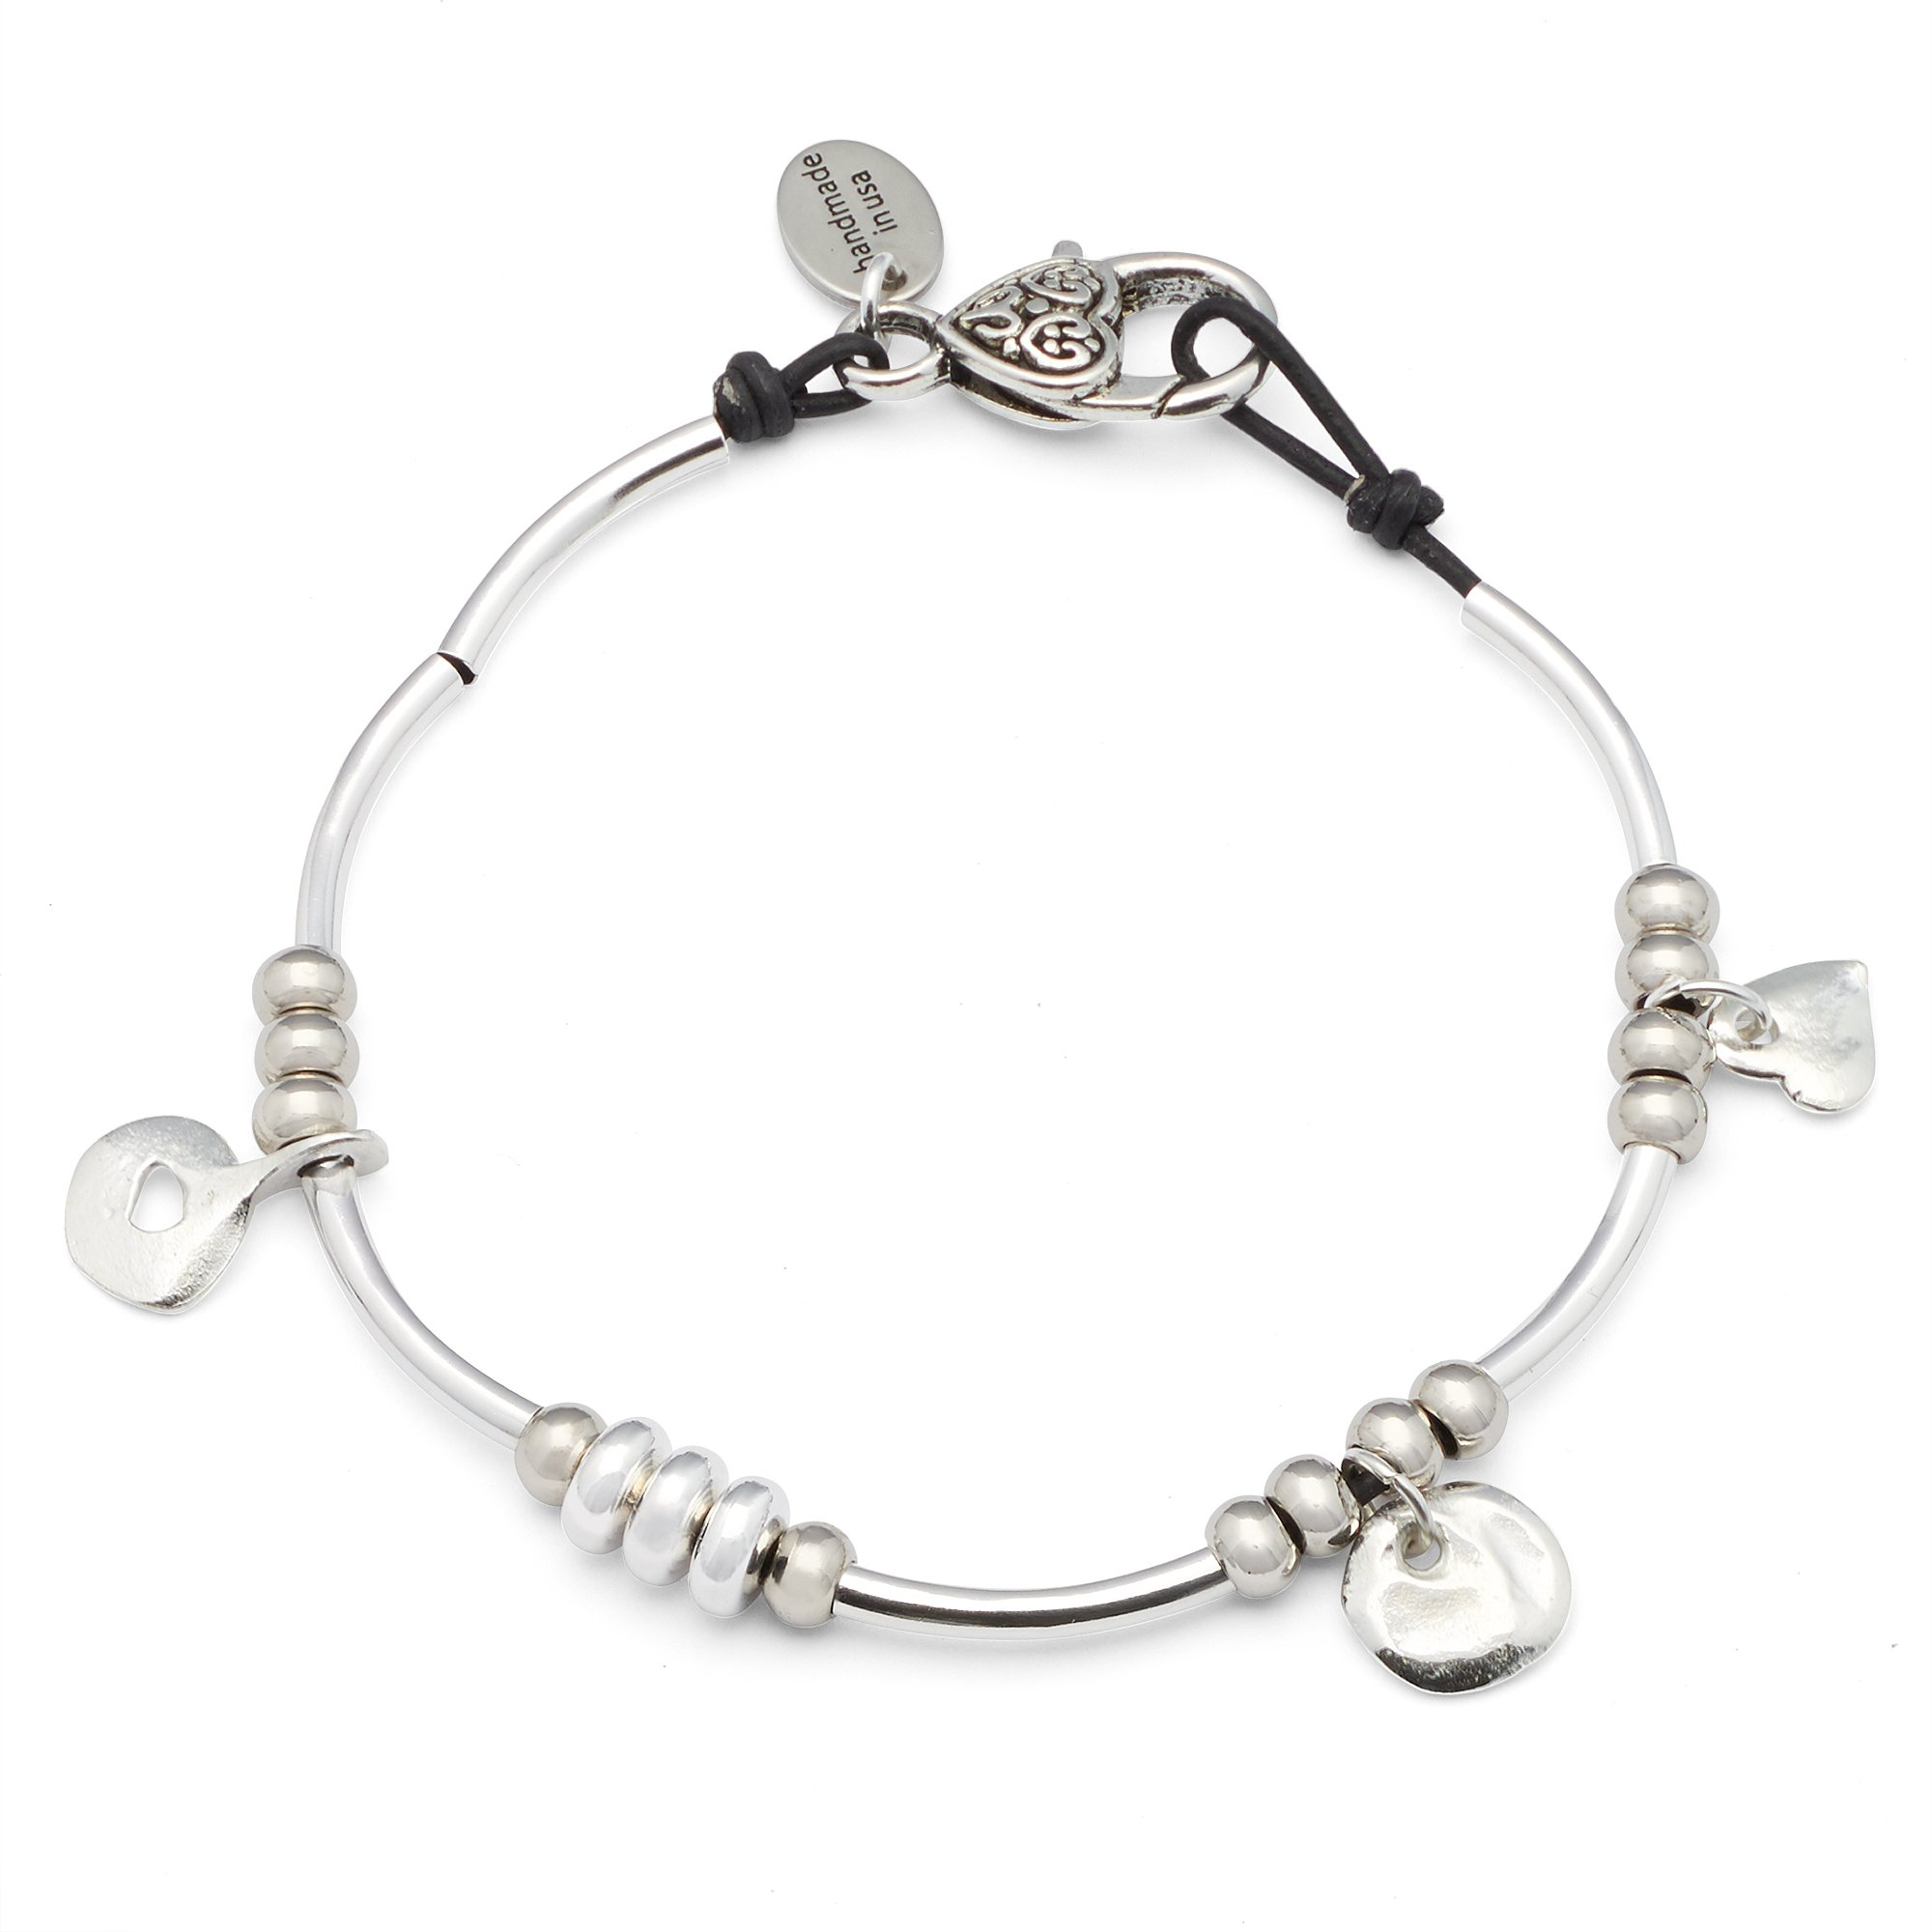 Lizzy James Gigi Anklet in Natural Black Leather and Silver Plate Crescents and Charms (10 INCH)